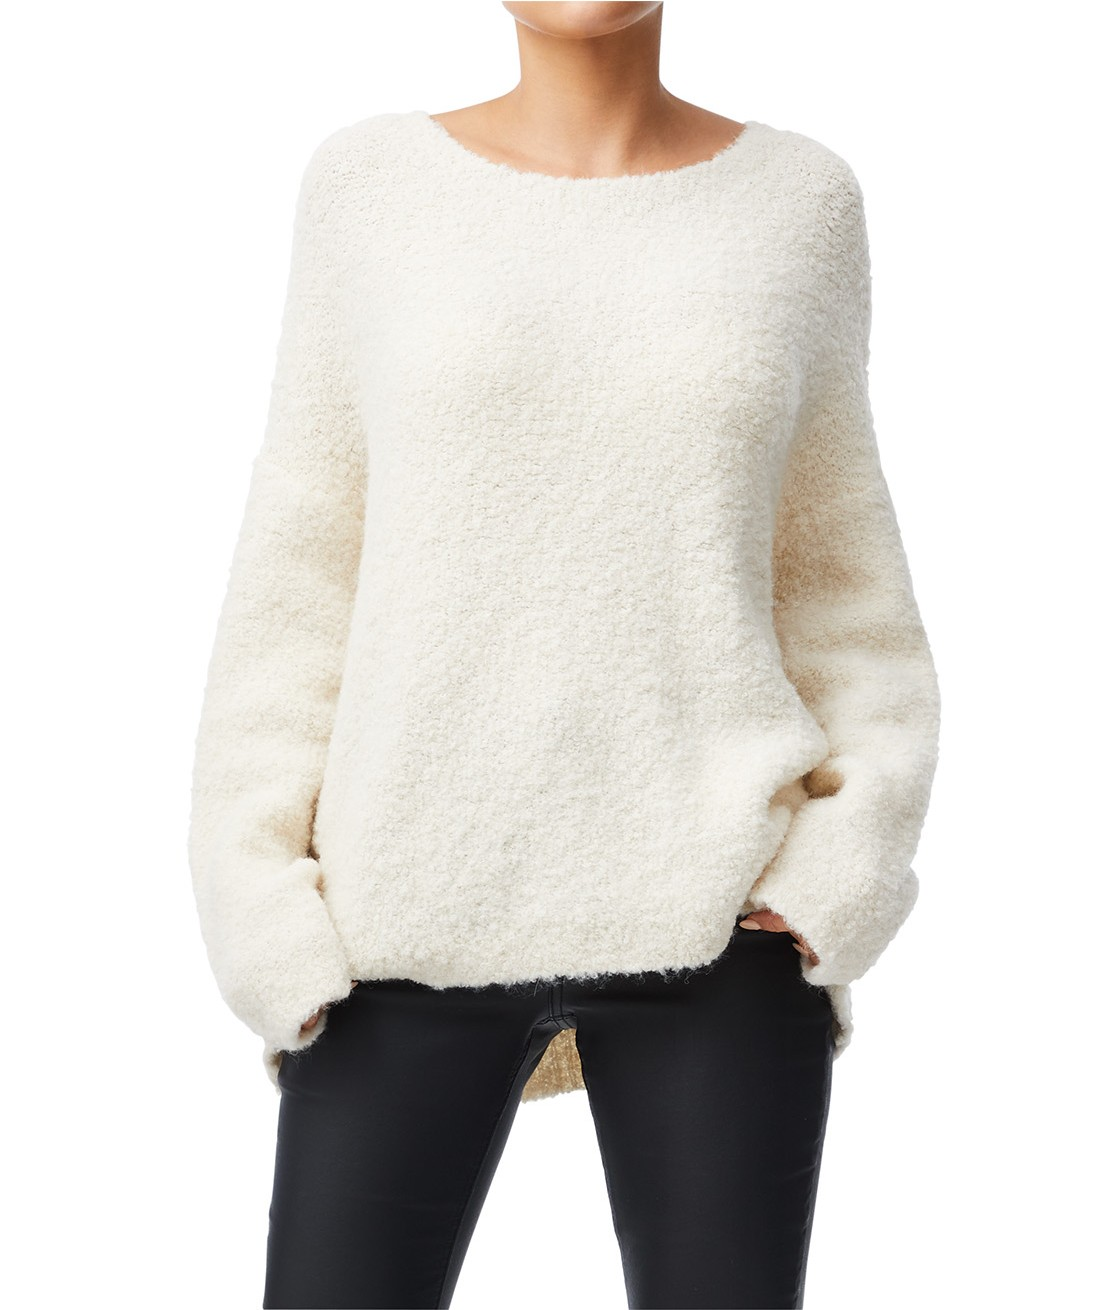 This jumper is cuddly and warm and will be good for the cooler nights toward the end of Autumn, or now if you're a cold frog like me! Find it  here.